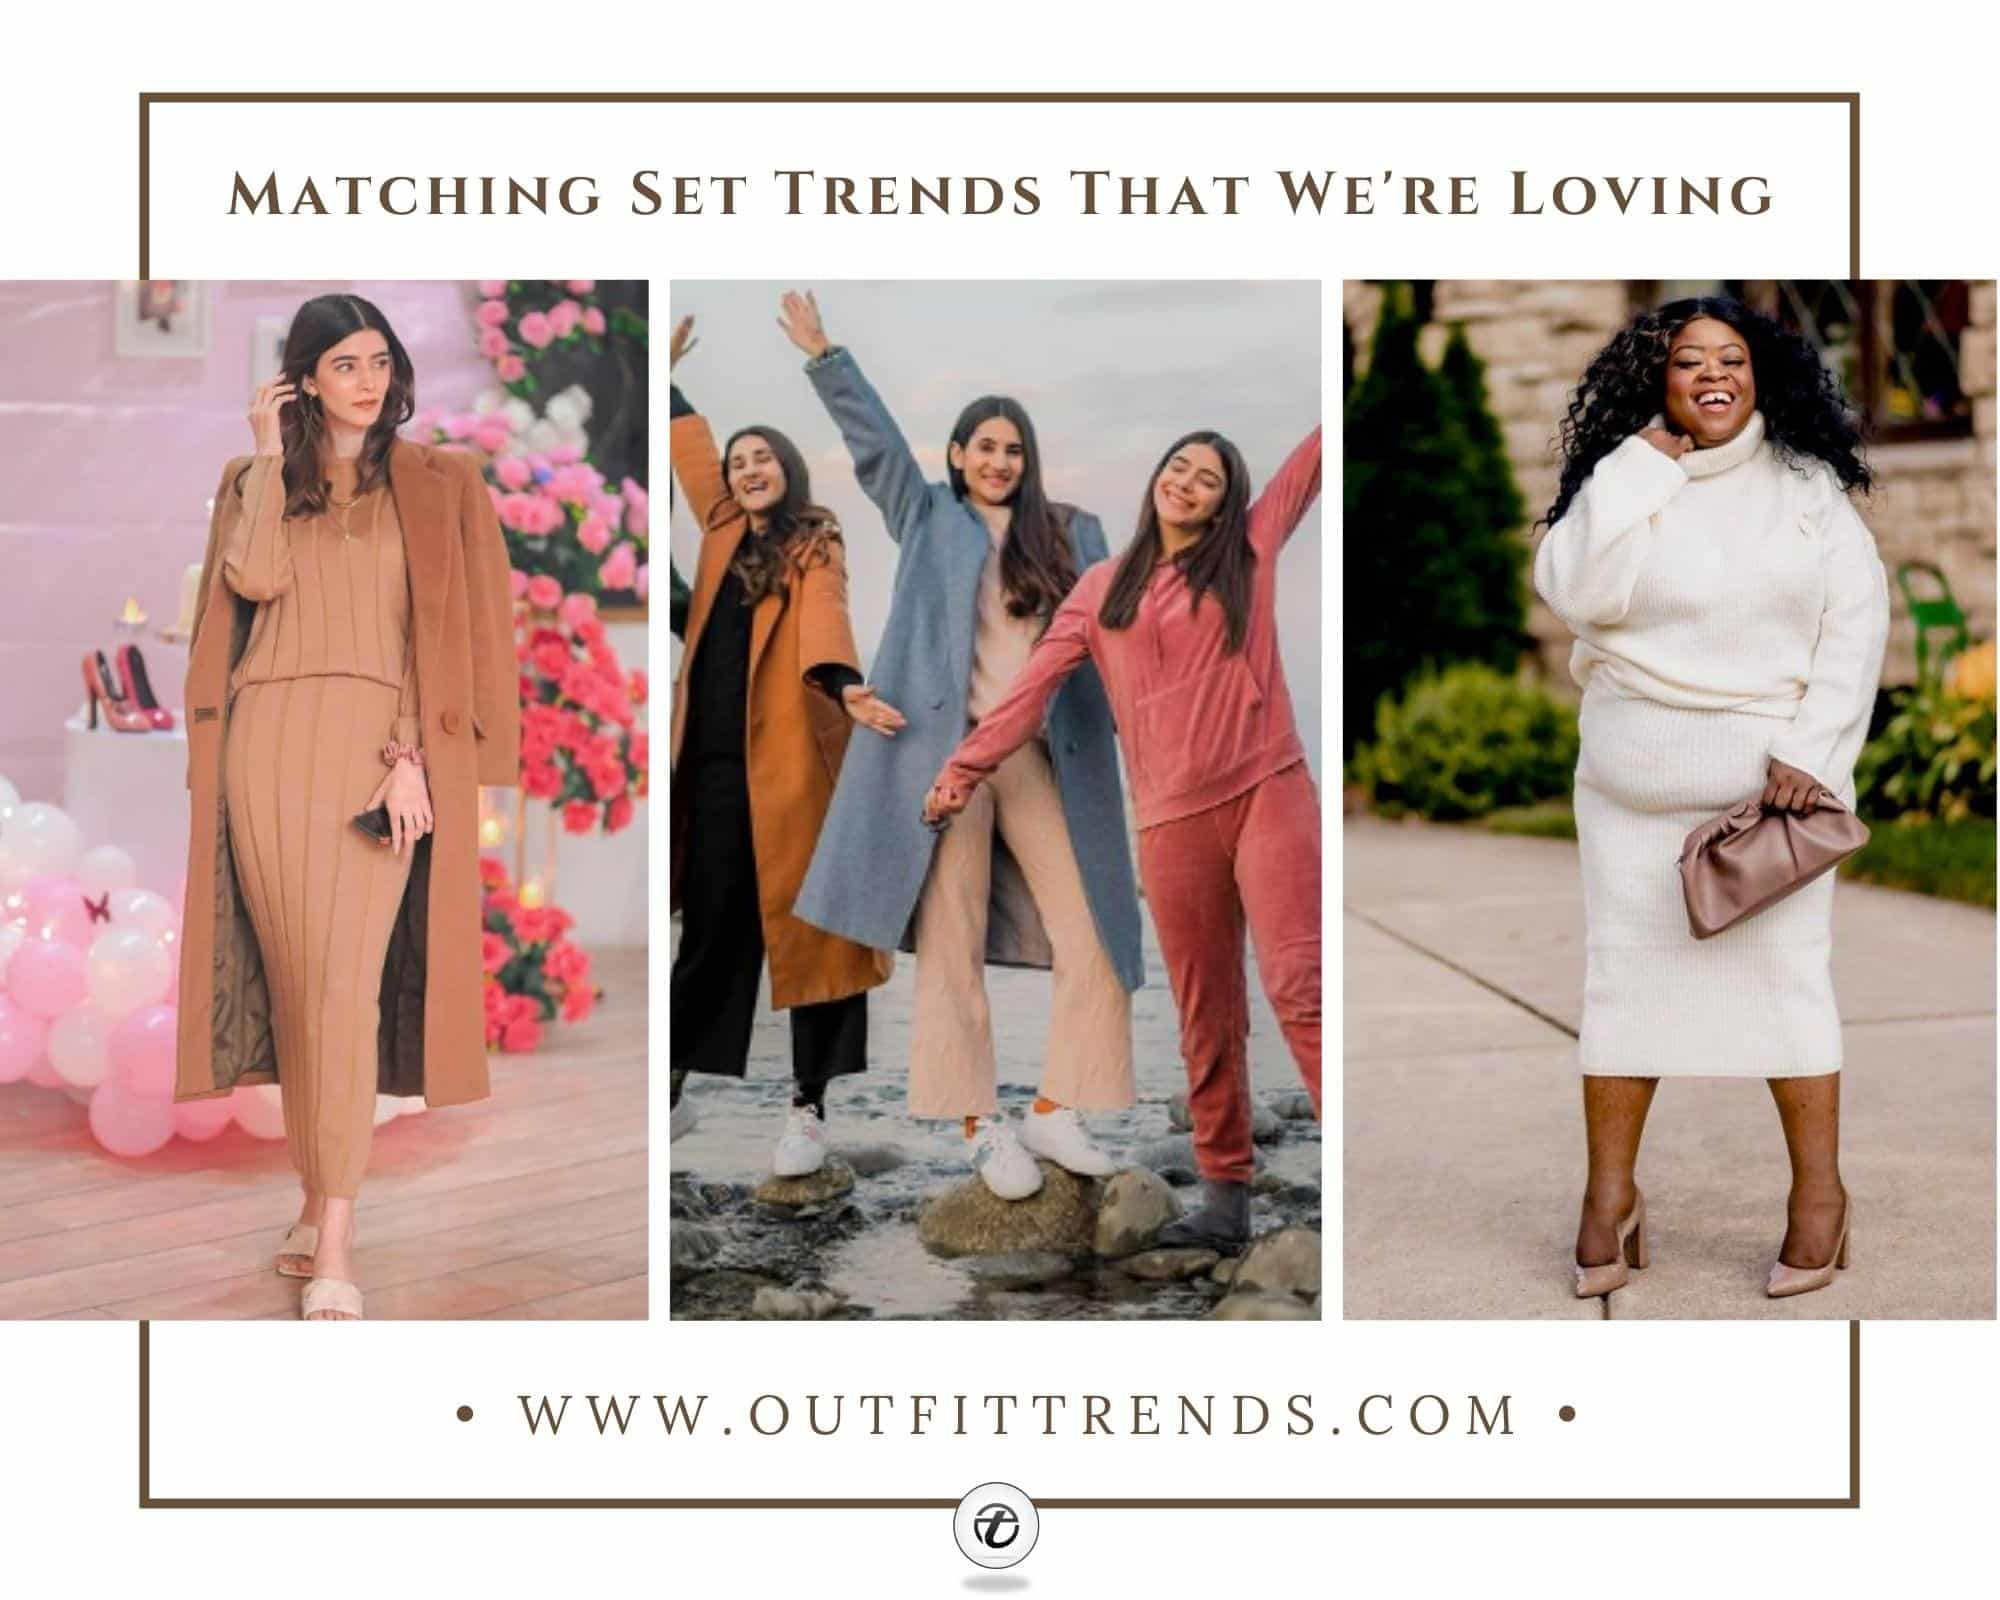 21 Best Matching Sets to Wear in 2021 & How to Style Them